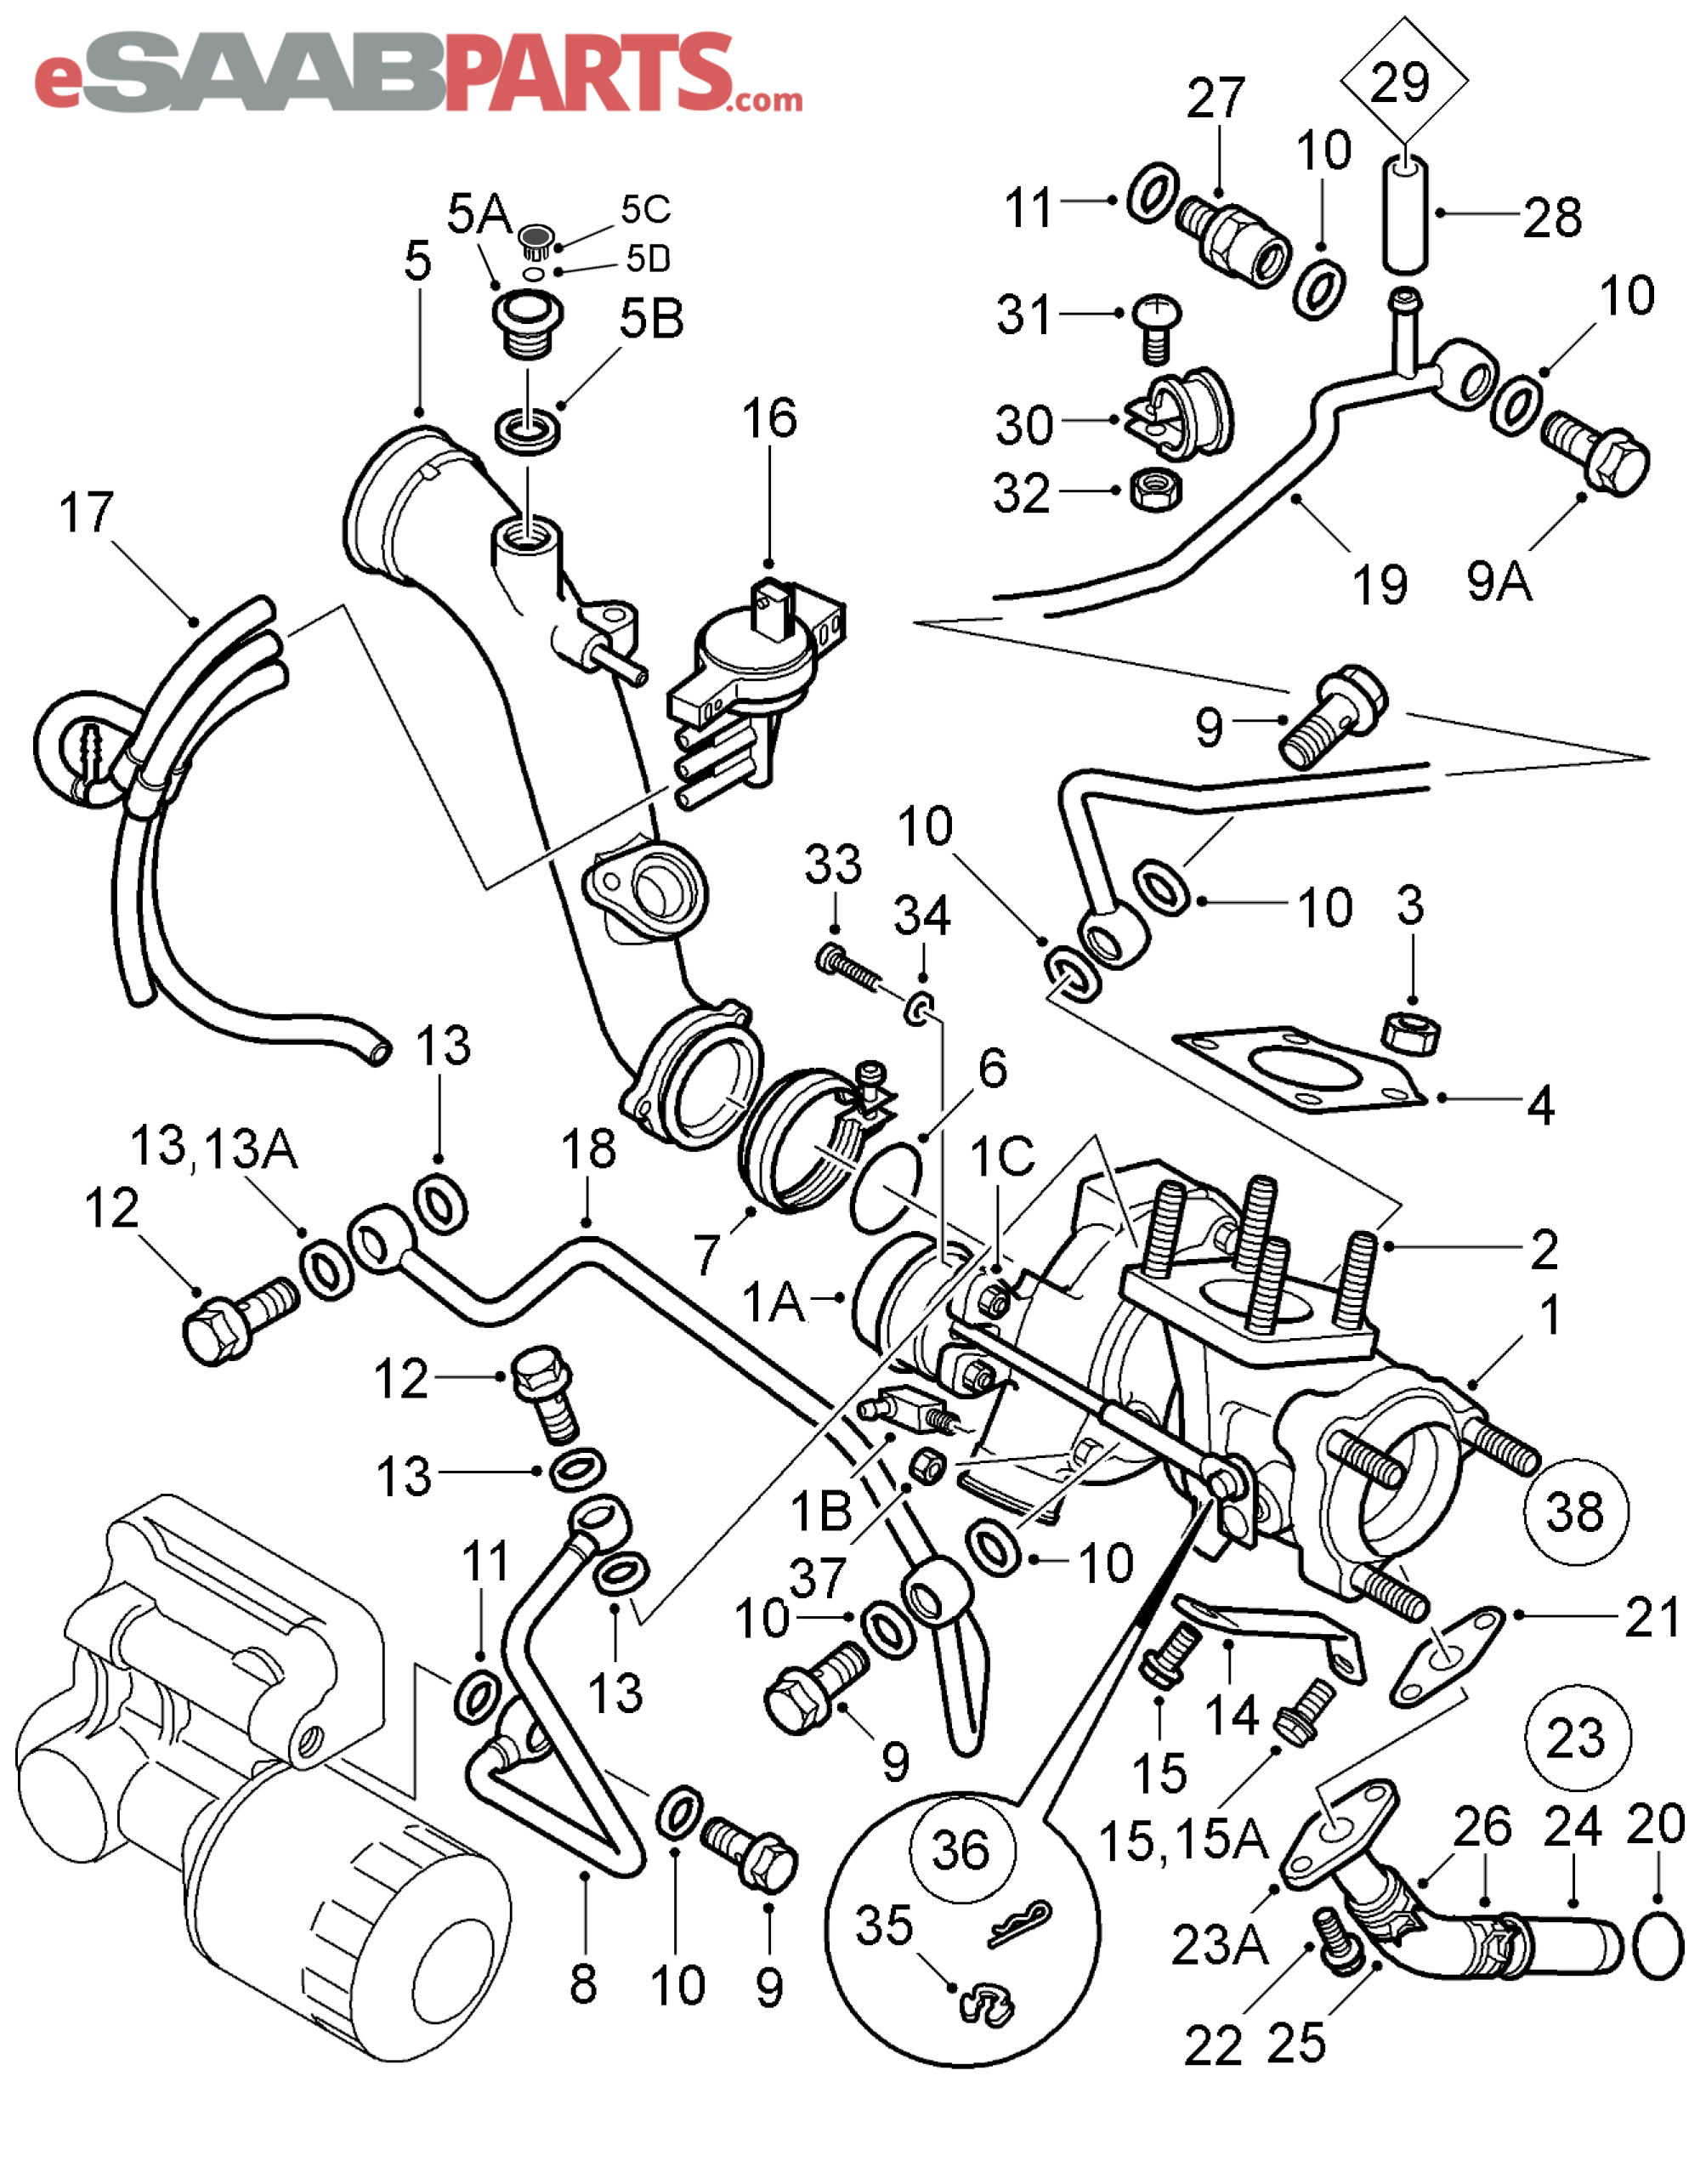 hight resolution of 2003 saab 9 5 engine diagram wiring diagram img with 1999 saab 9 5 2 3 engine diagram furthermore saab 900 engine